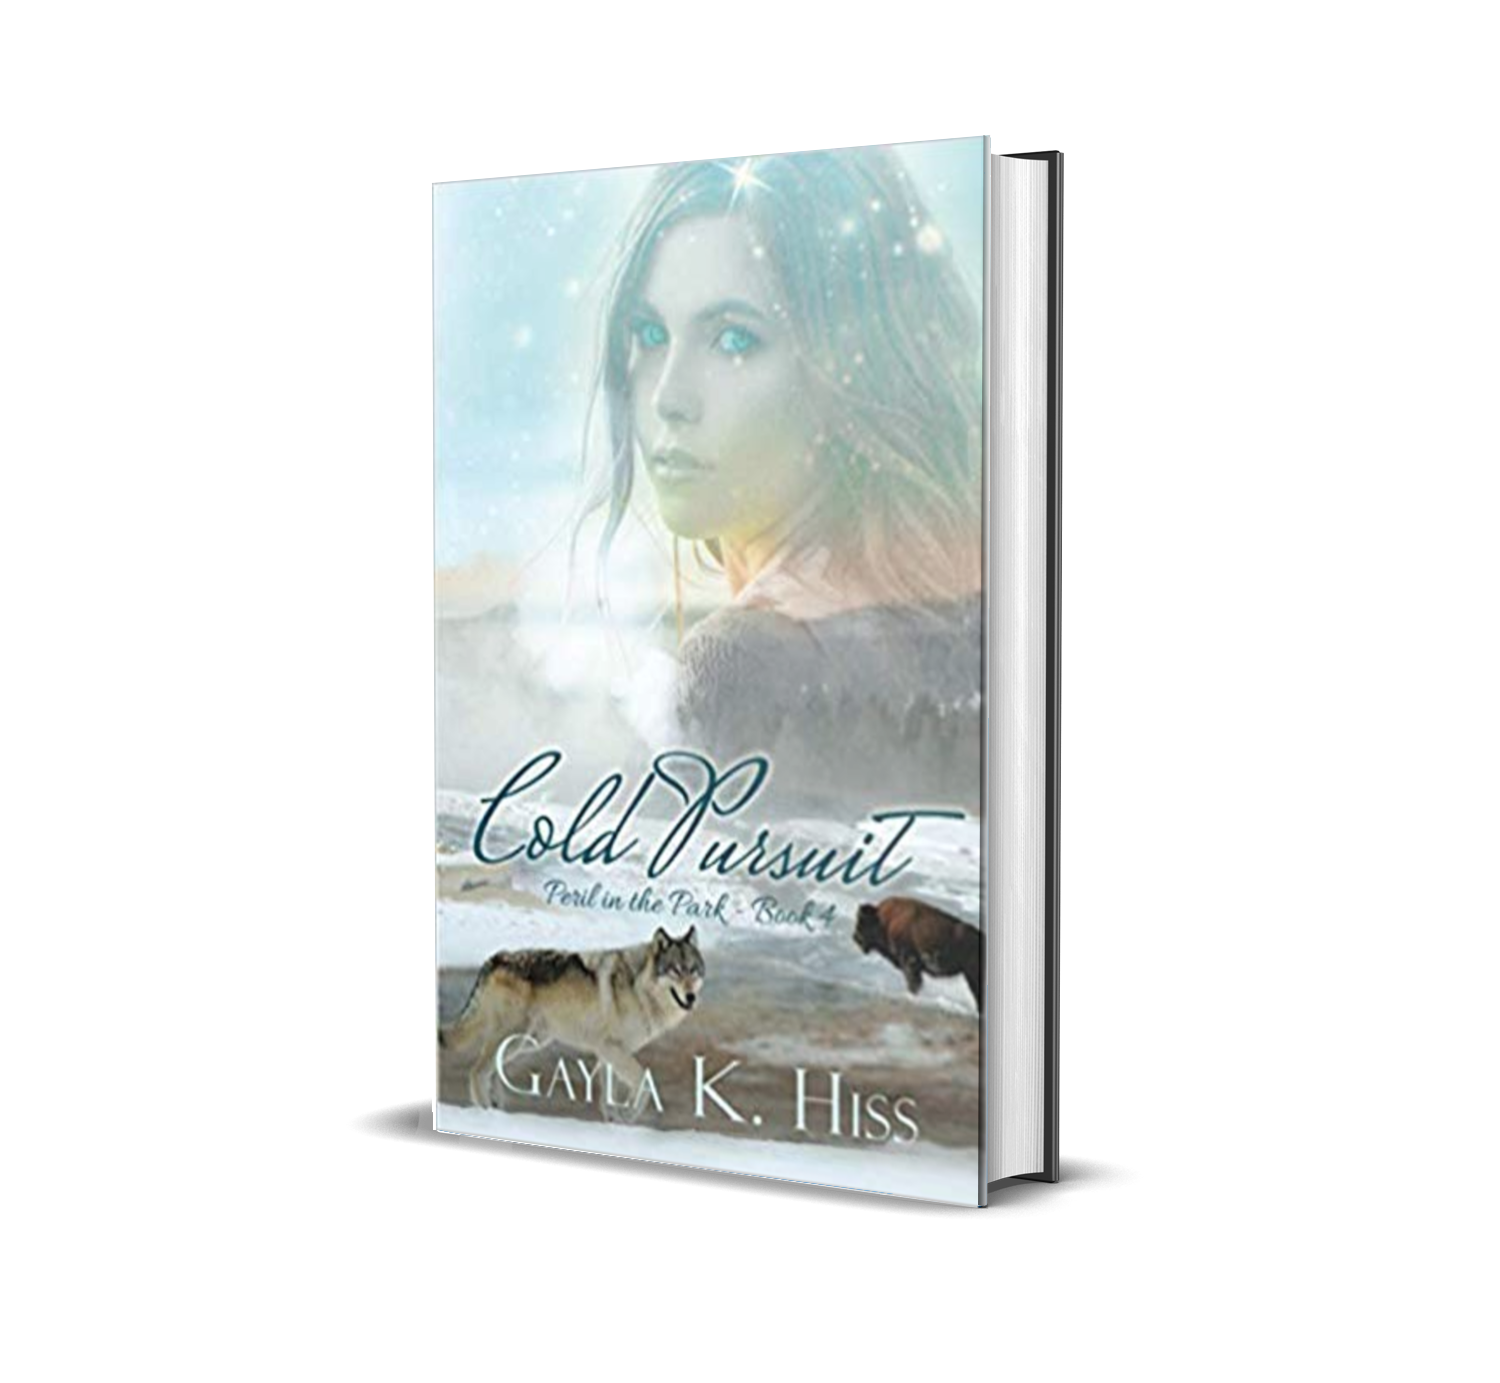 Cold Pursuit by Gayla Hiss